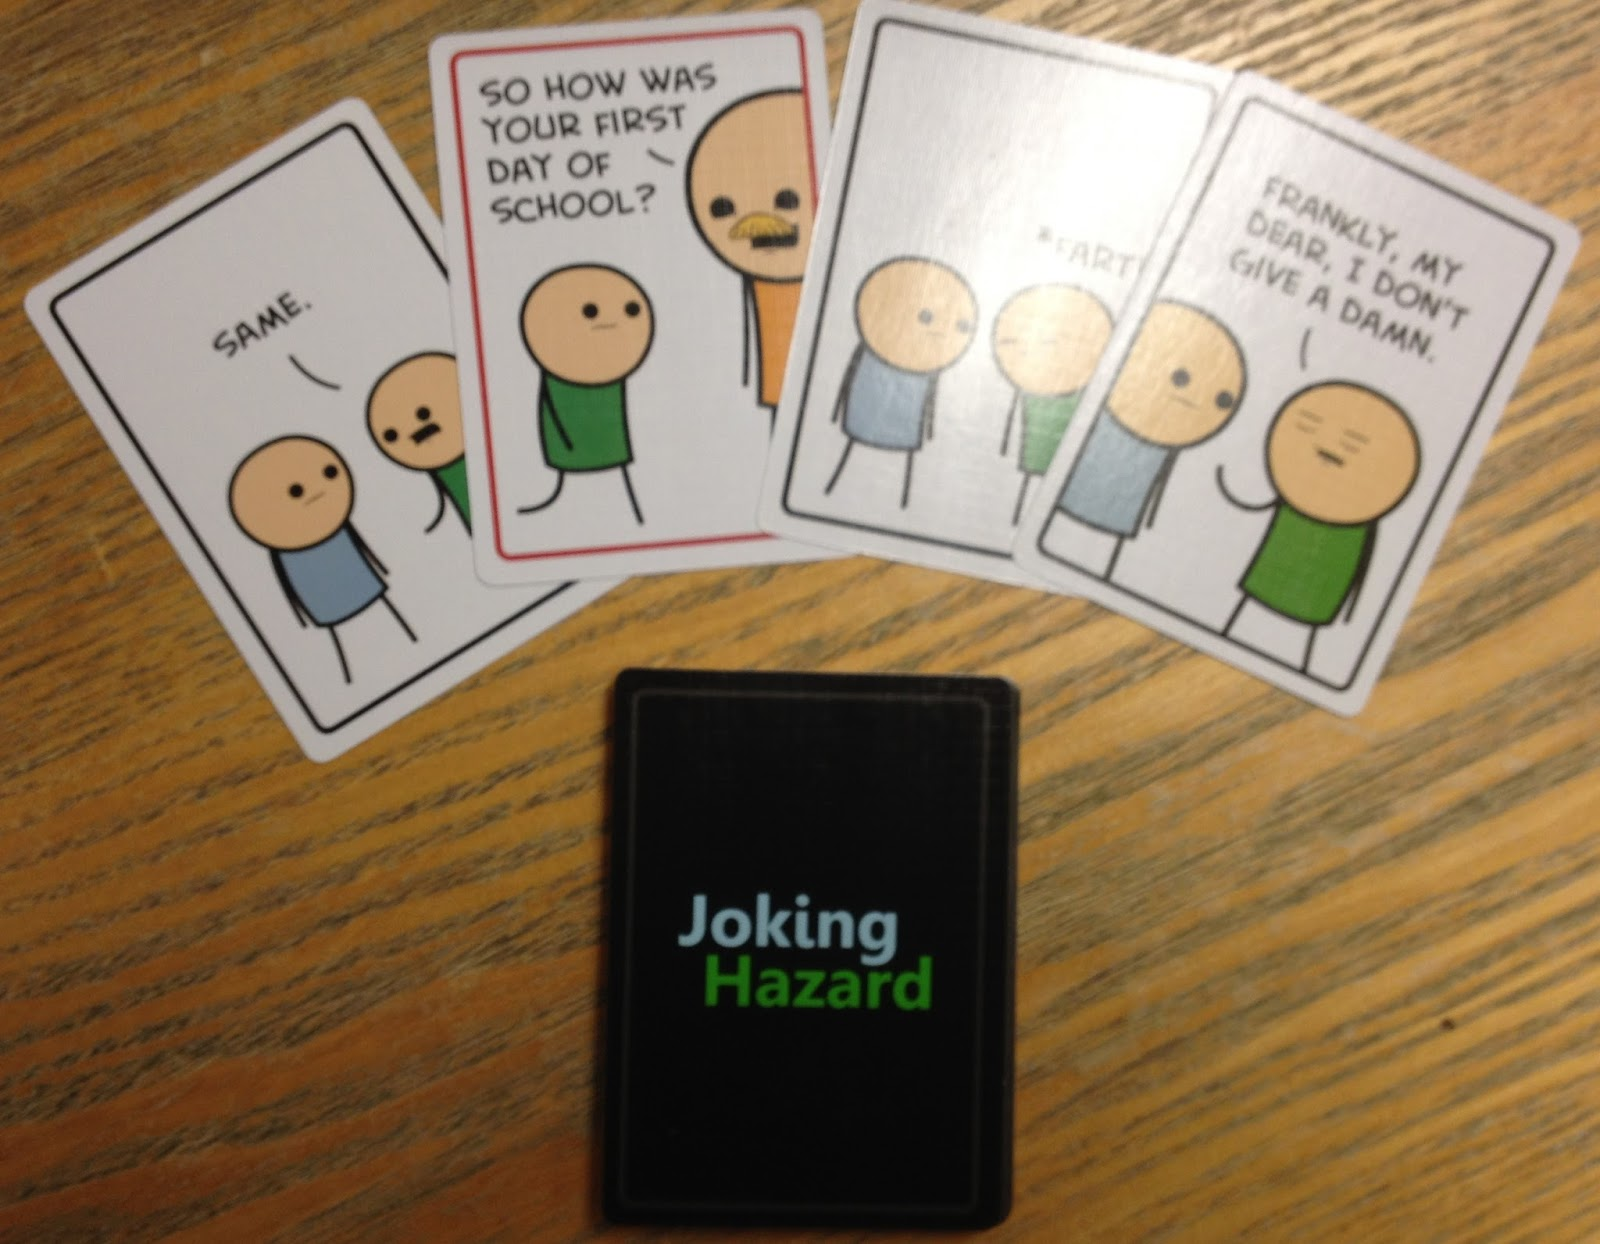 Games Tea Joking Hazard An Offensive Card Game From Cyanide - Map of the us hazards comic